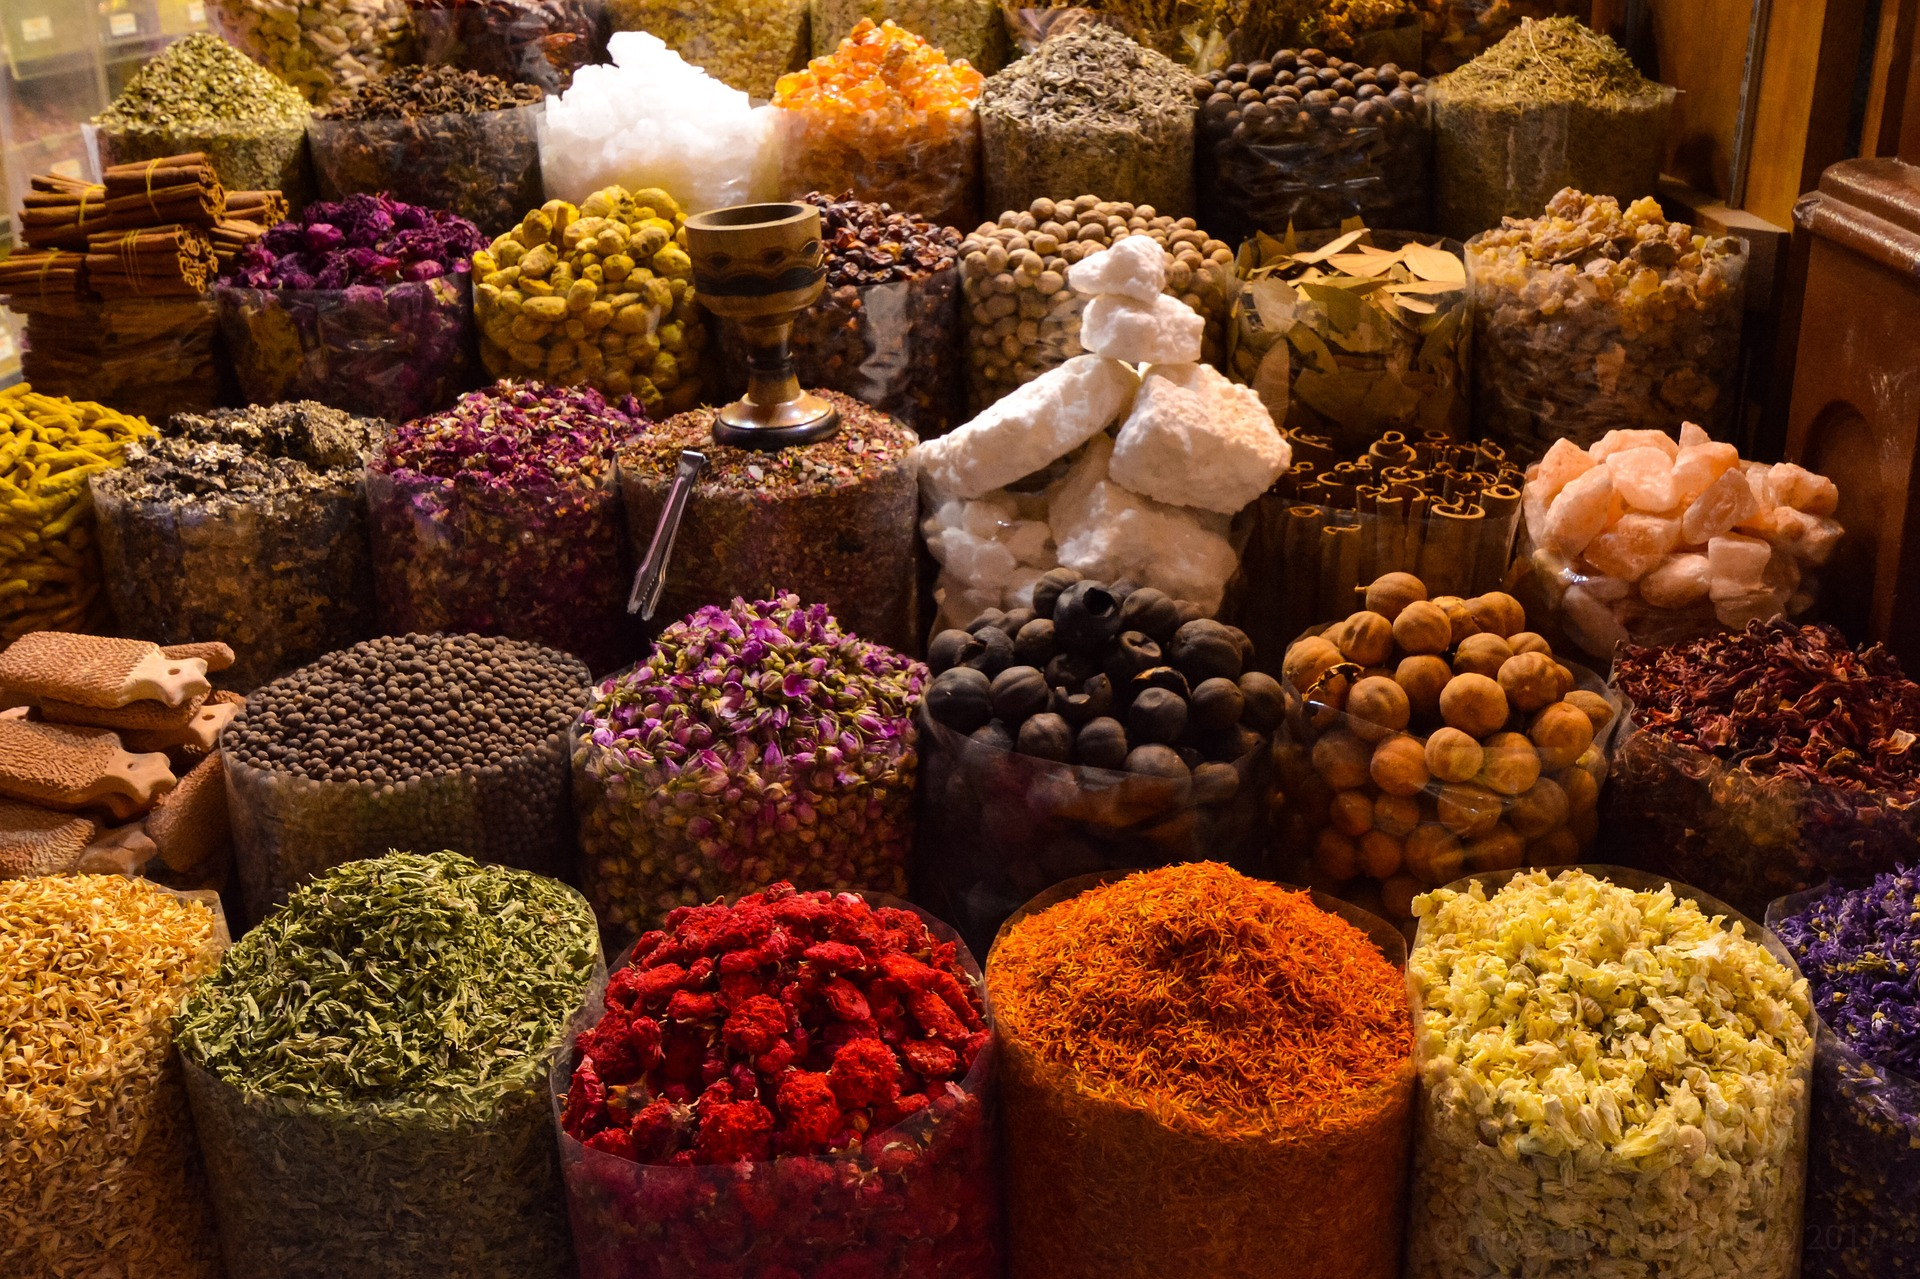 Arabian spices in Dubai souk. Photo by Christophe Schindler from Pixabay